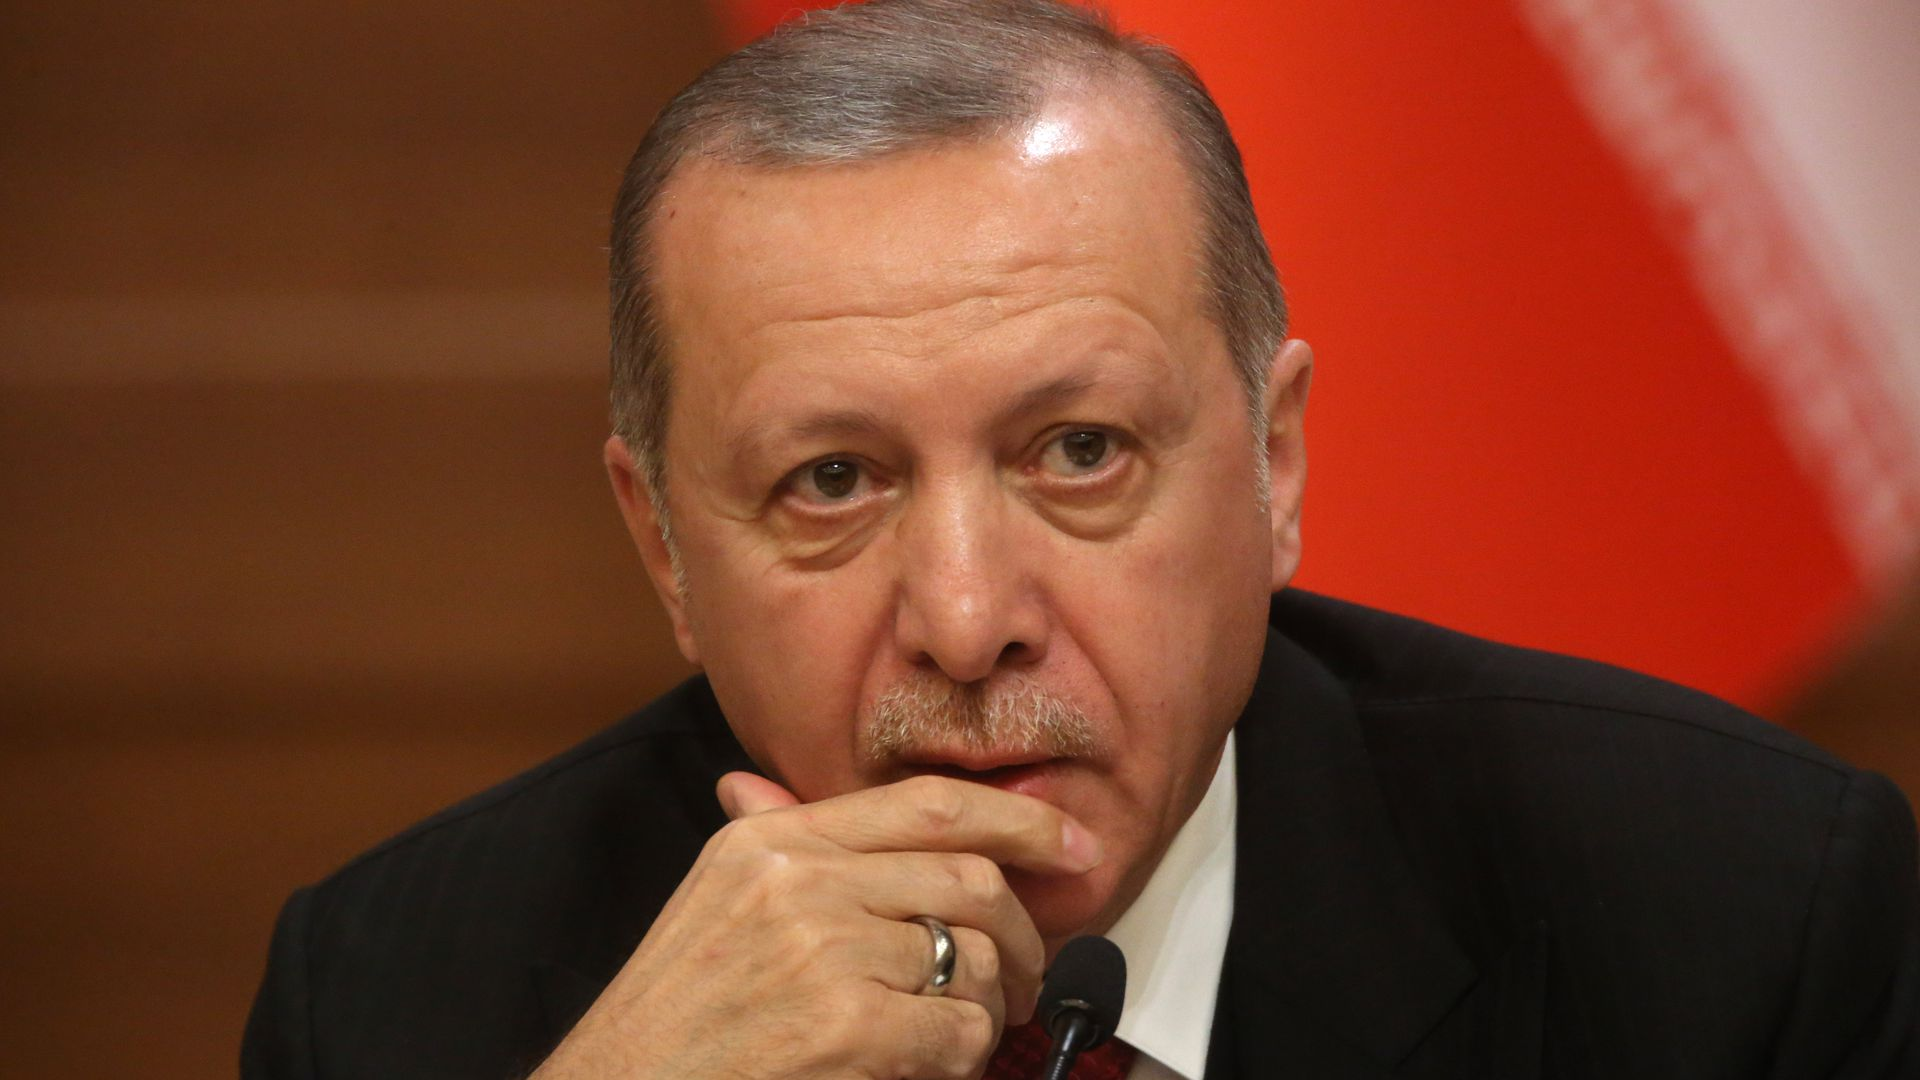 Turkish President Recep Tayyip Erdogan listens during a press conference.